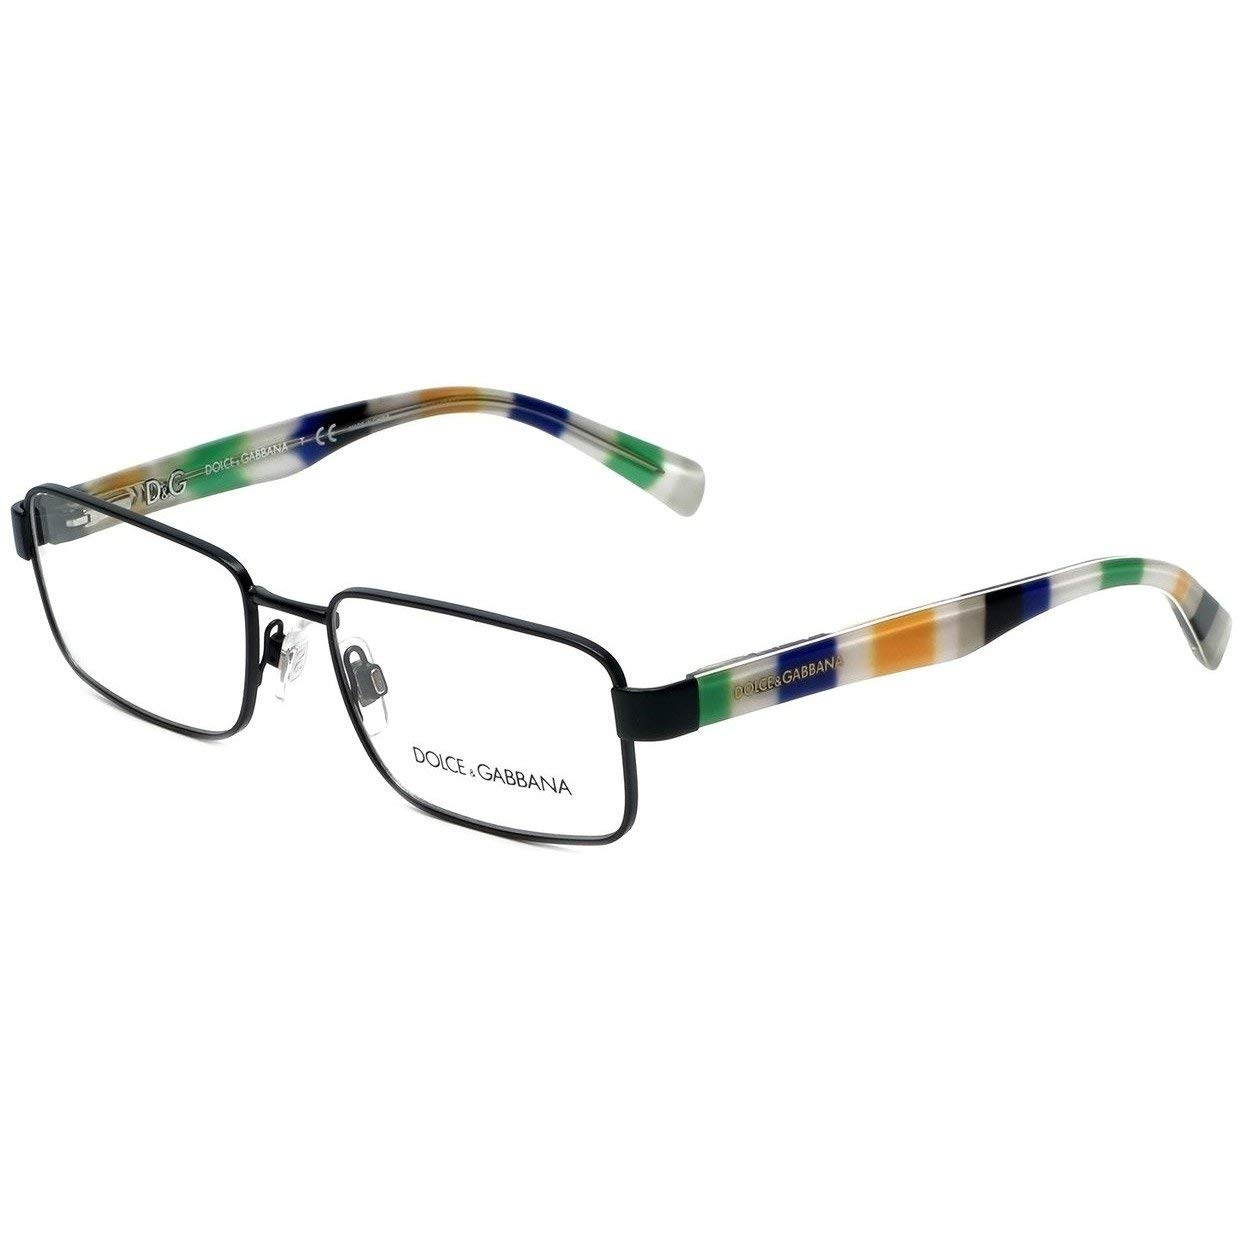 Dolce /& Gabbana Eyeglasses D/&G 1238P 1238//P 1237 Matte Black Optical Frame 54mm